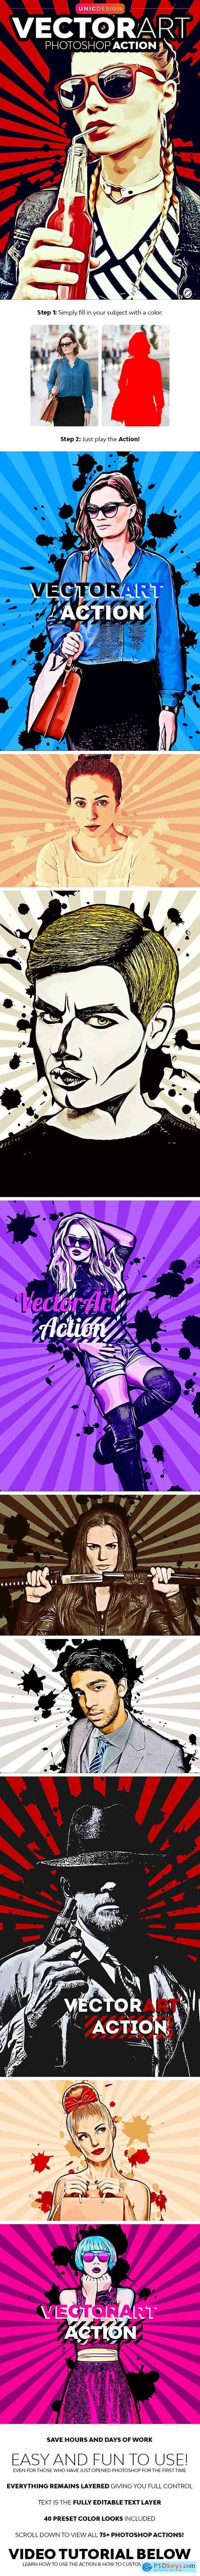 VectorArt Photoshop Action 23467041